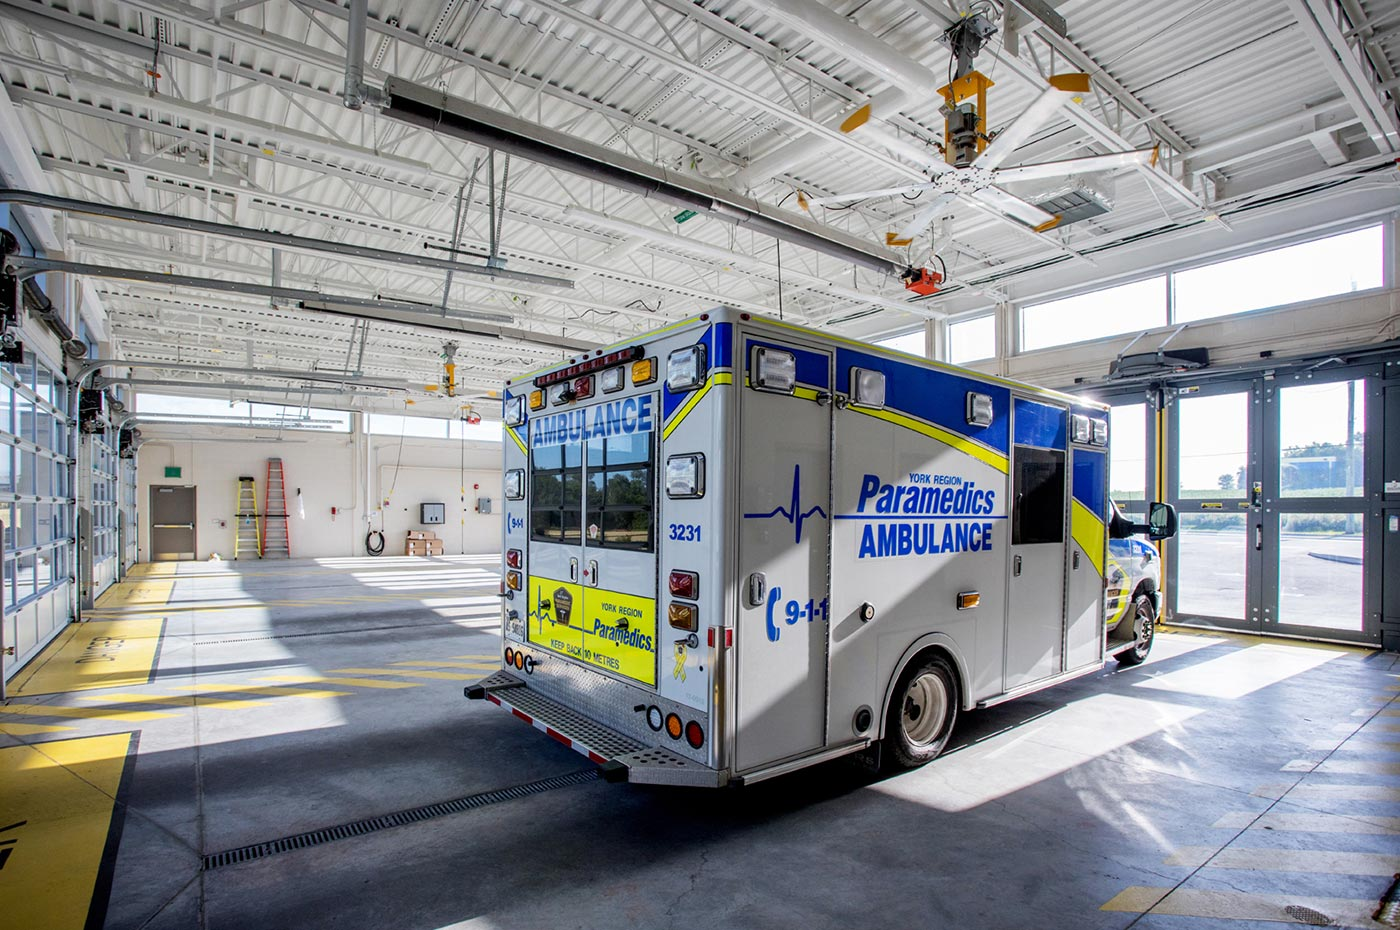 York Region Paramedic Response Station #13 Ambulance Bay